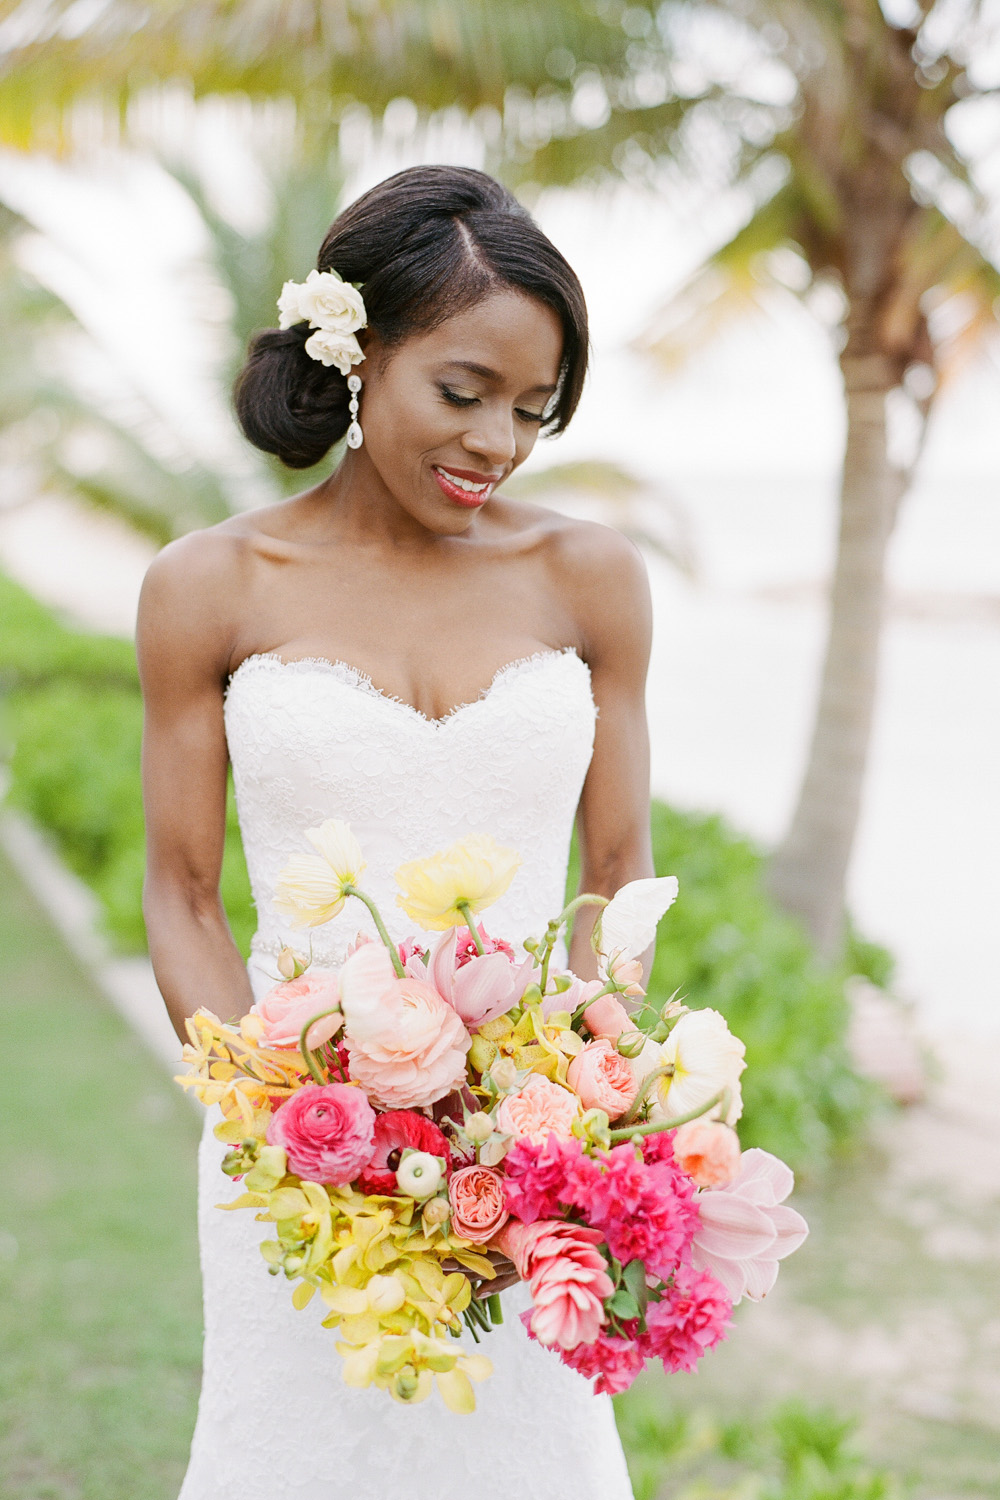 The bride in a sweetheart neckline gown and tropical flower bouquet; Sylvie Gil Photography